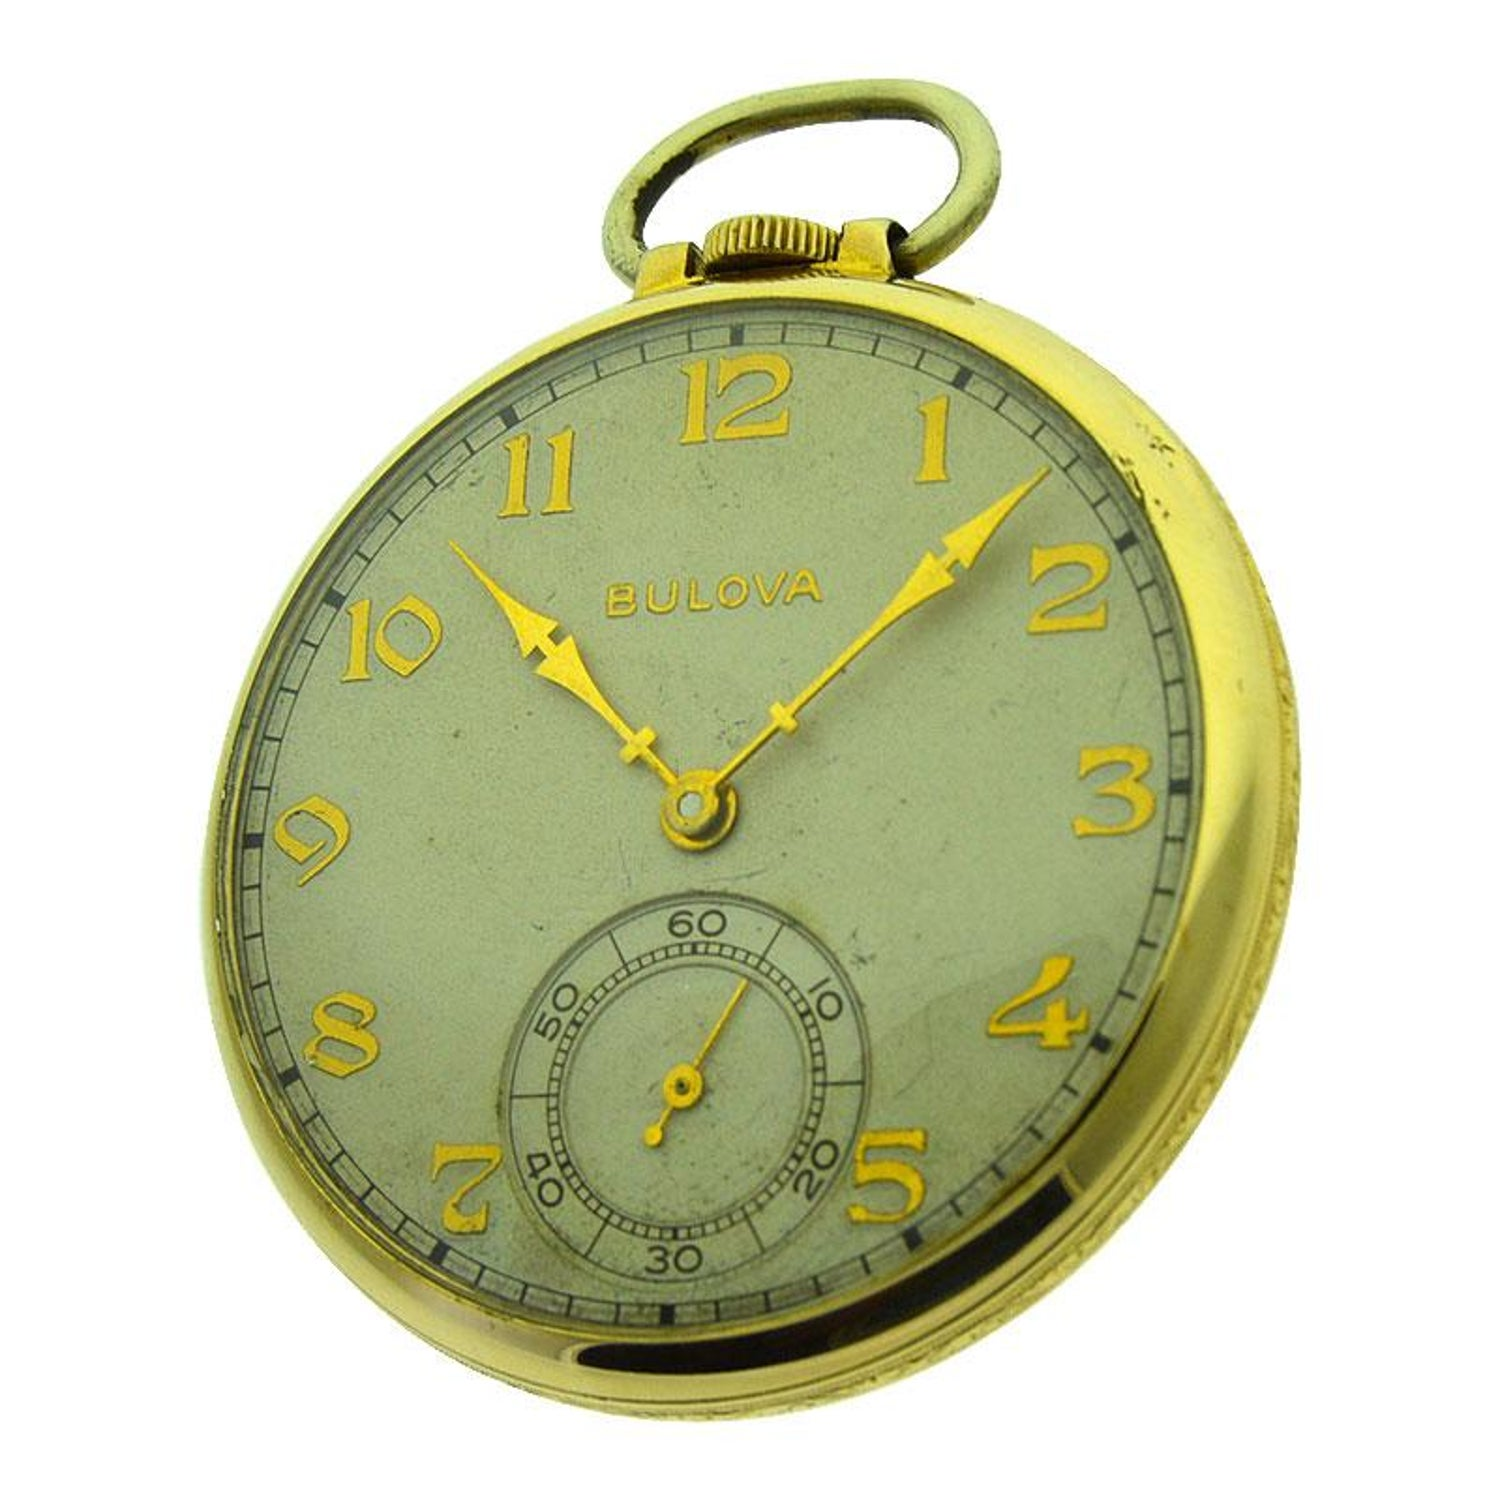 426a96b65 Bulova Open Faced Pocket Watch with Original Dial, circa 1940s For Sale at  1stdibs